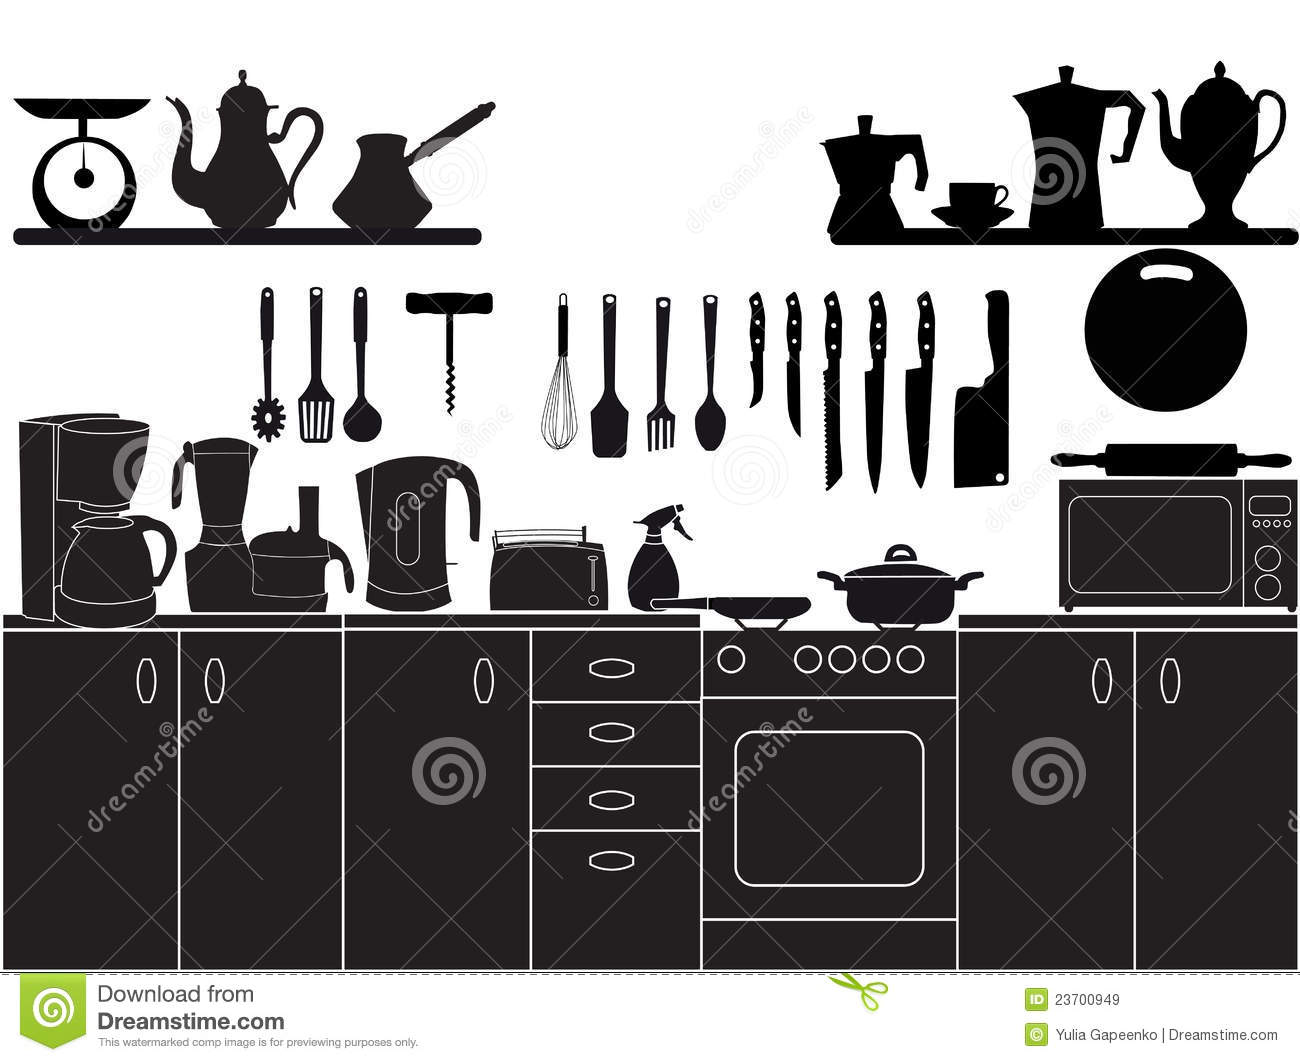 Keuken Mixer Machine Vector Illustration Of Kitchen Tools Royalty Free Stock